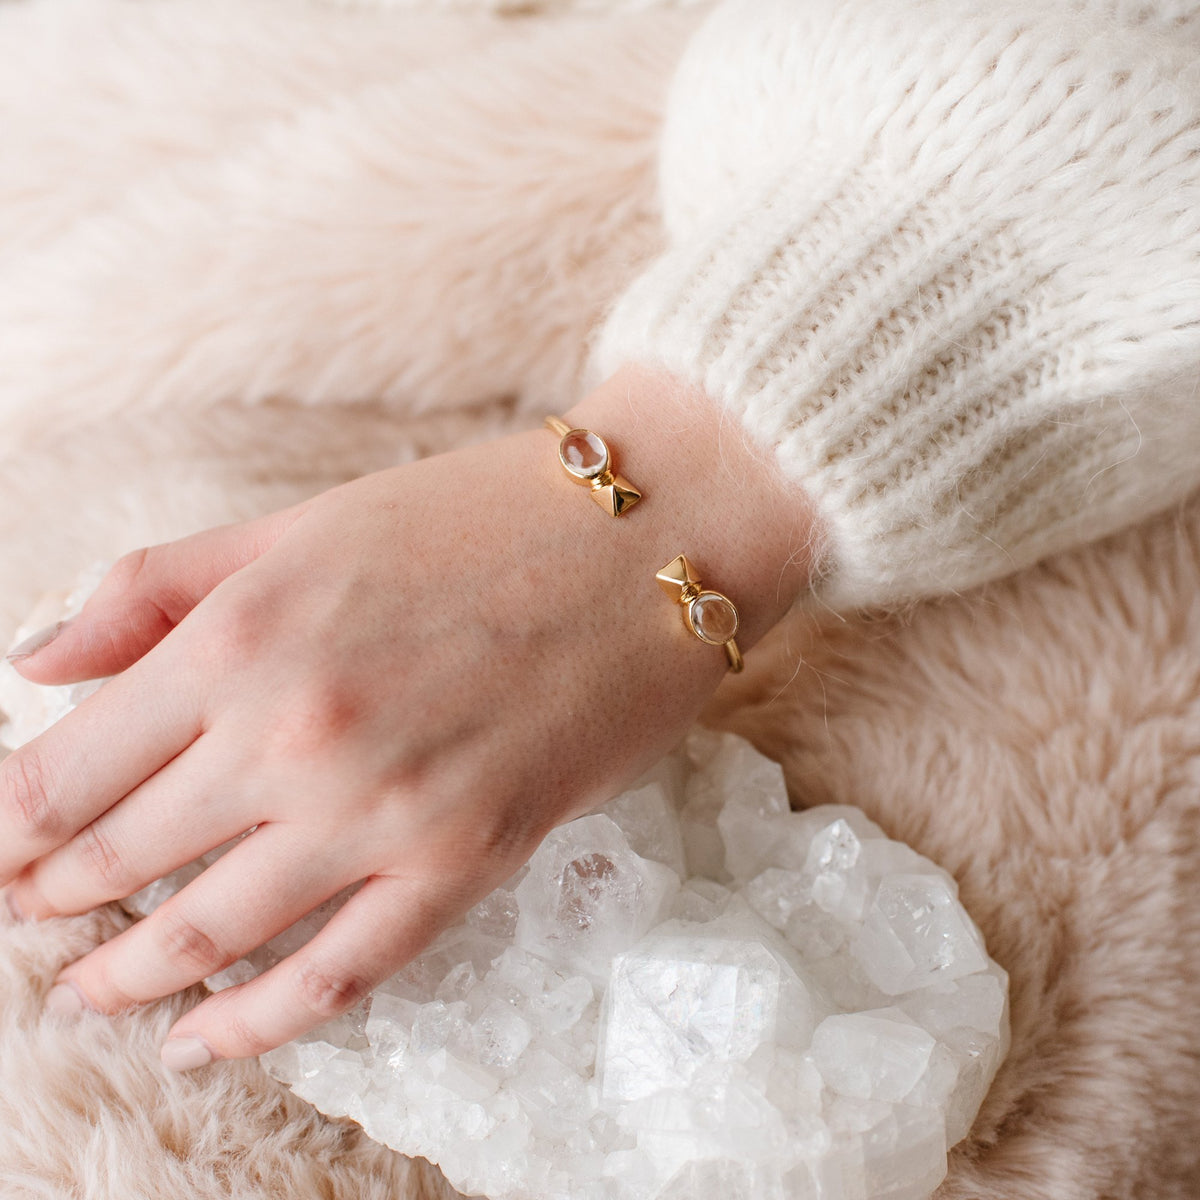 GLEE CUFF - ROCK CRYSTAL & GOLD - SO PRETTY CARA COTTER